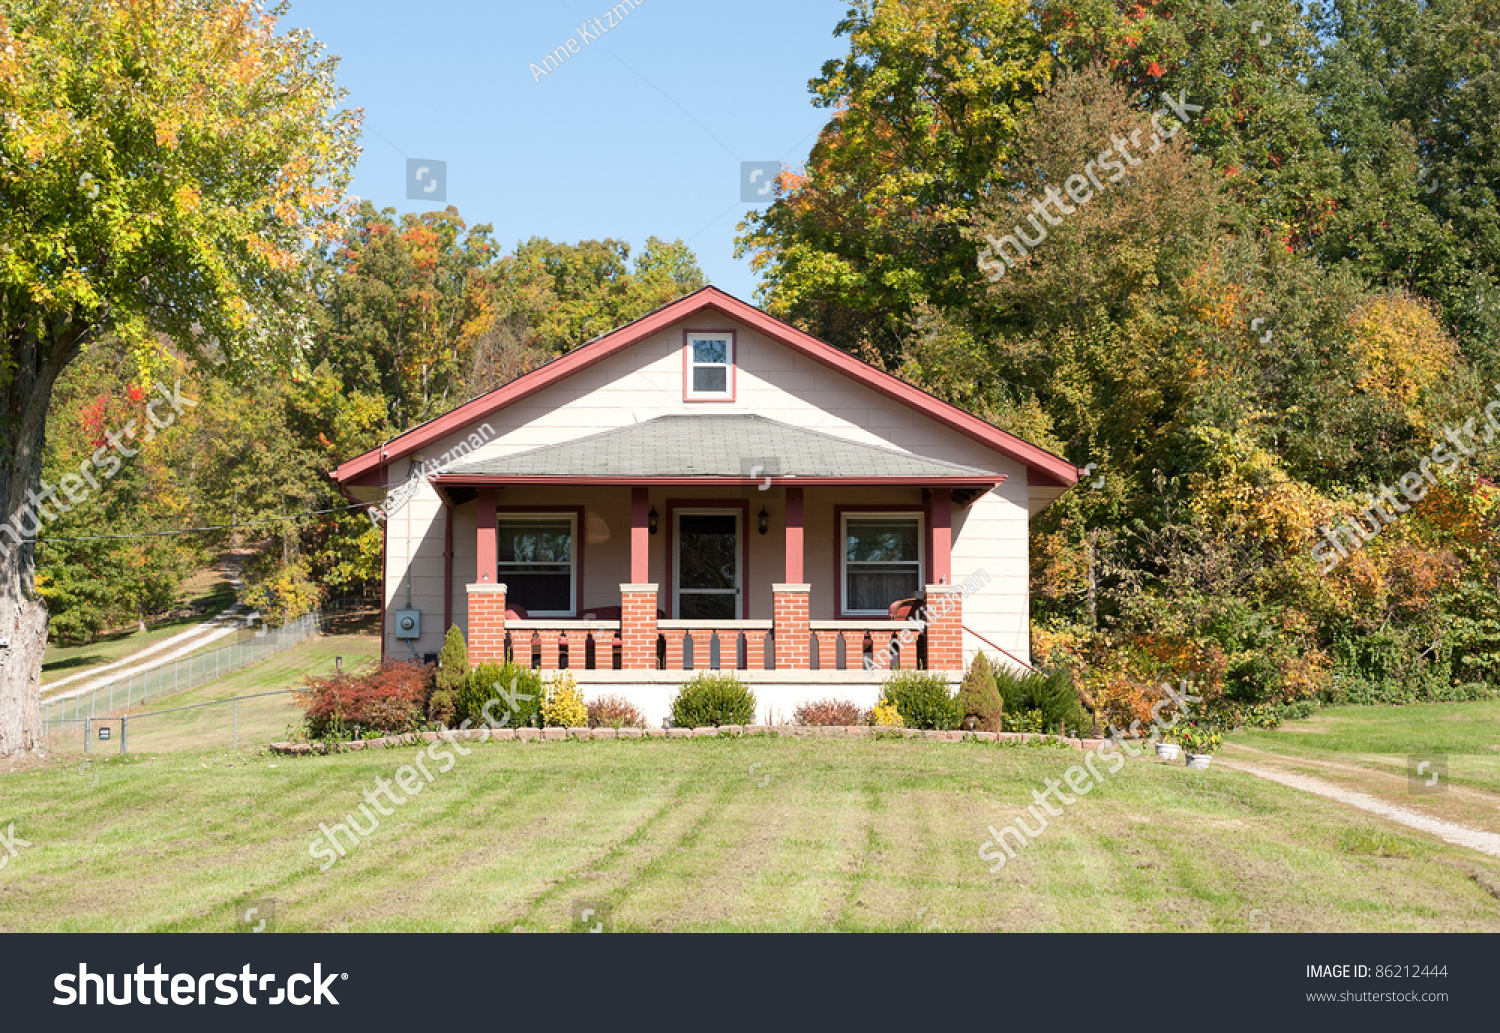 1930s craftsman style house country autumn stock photo 86212444 shutterstock - Home style pic ...